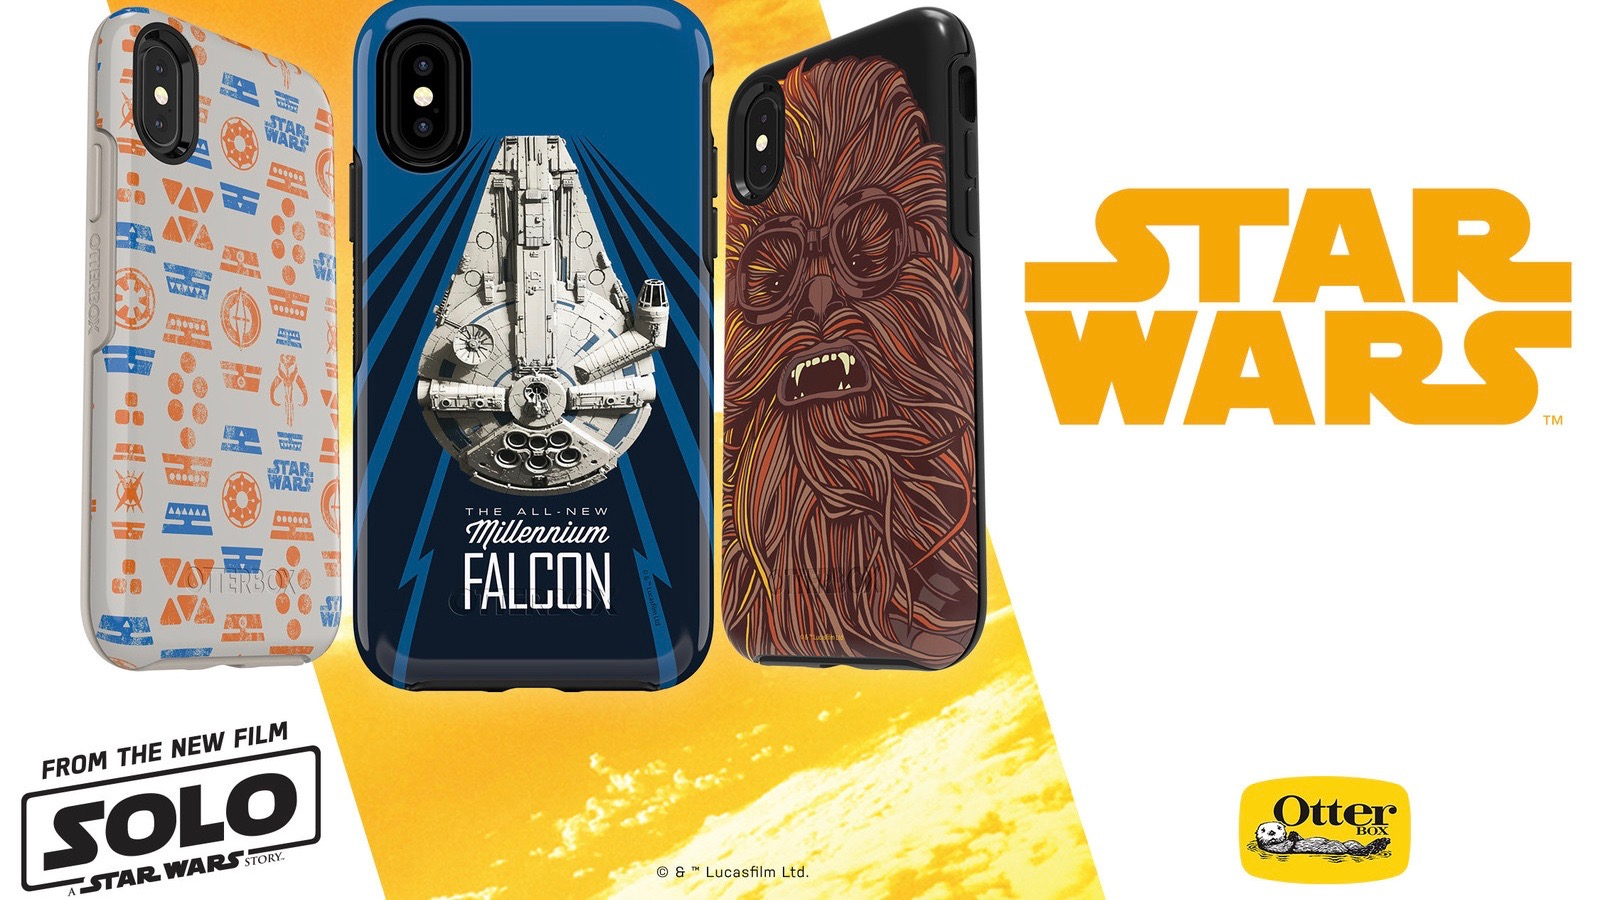 Otterbox releases new 'Solo: A Star Wars Story' cases for